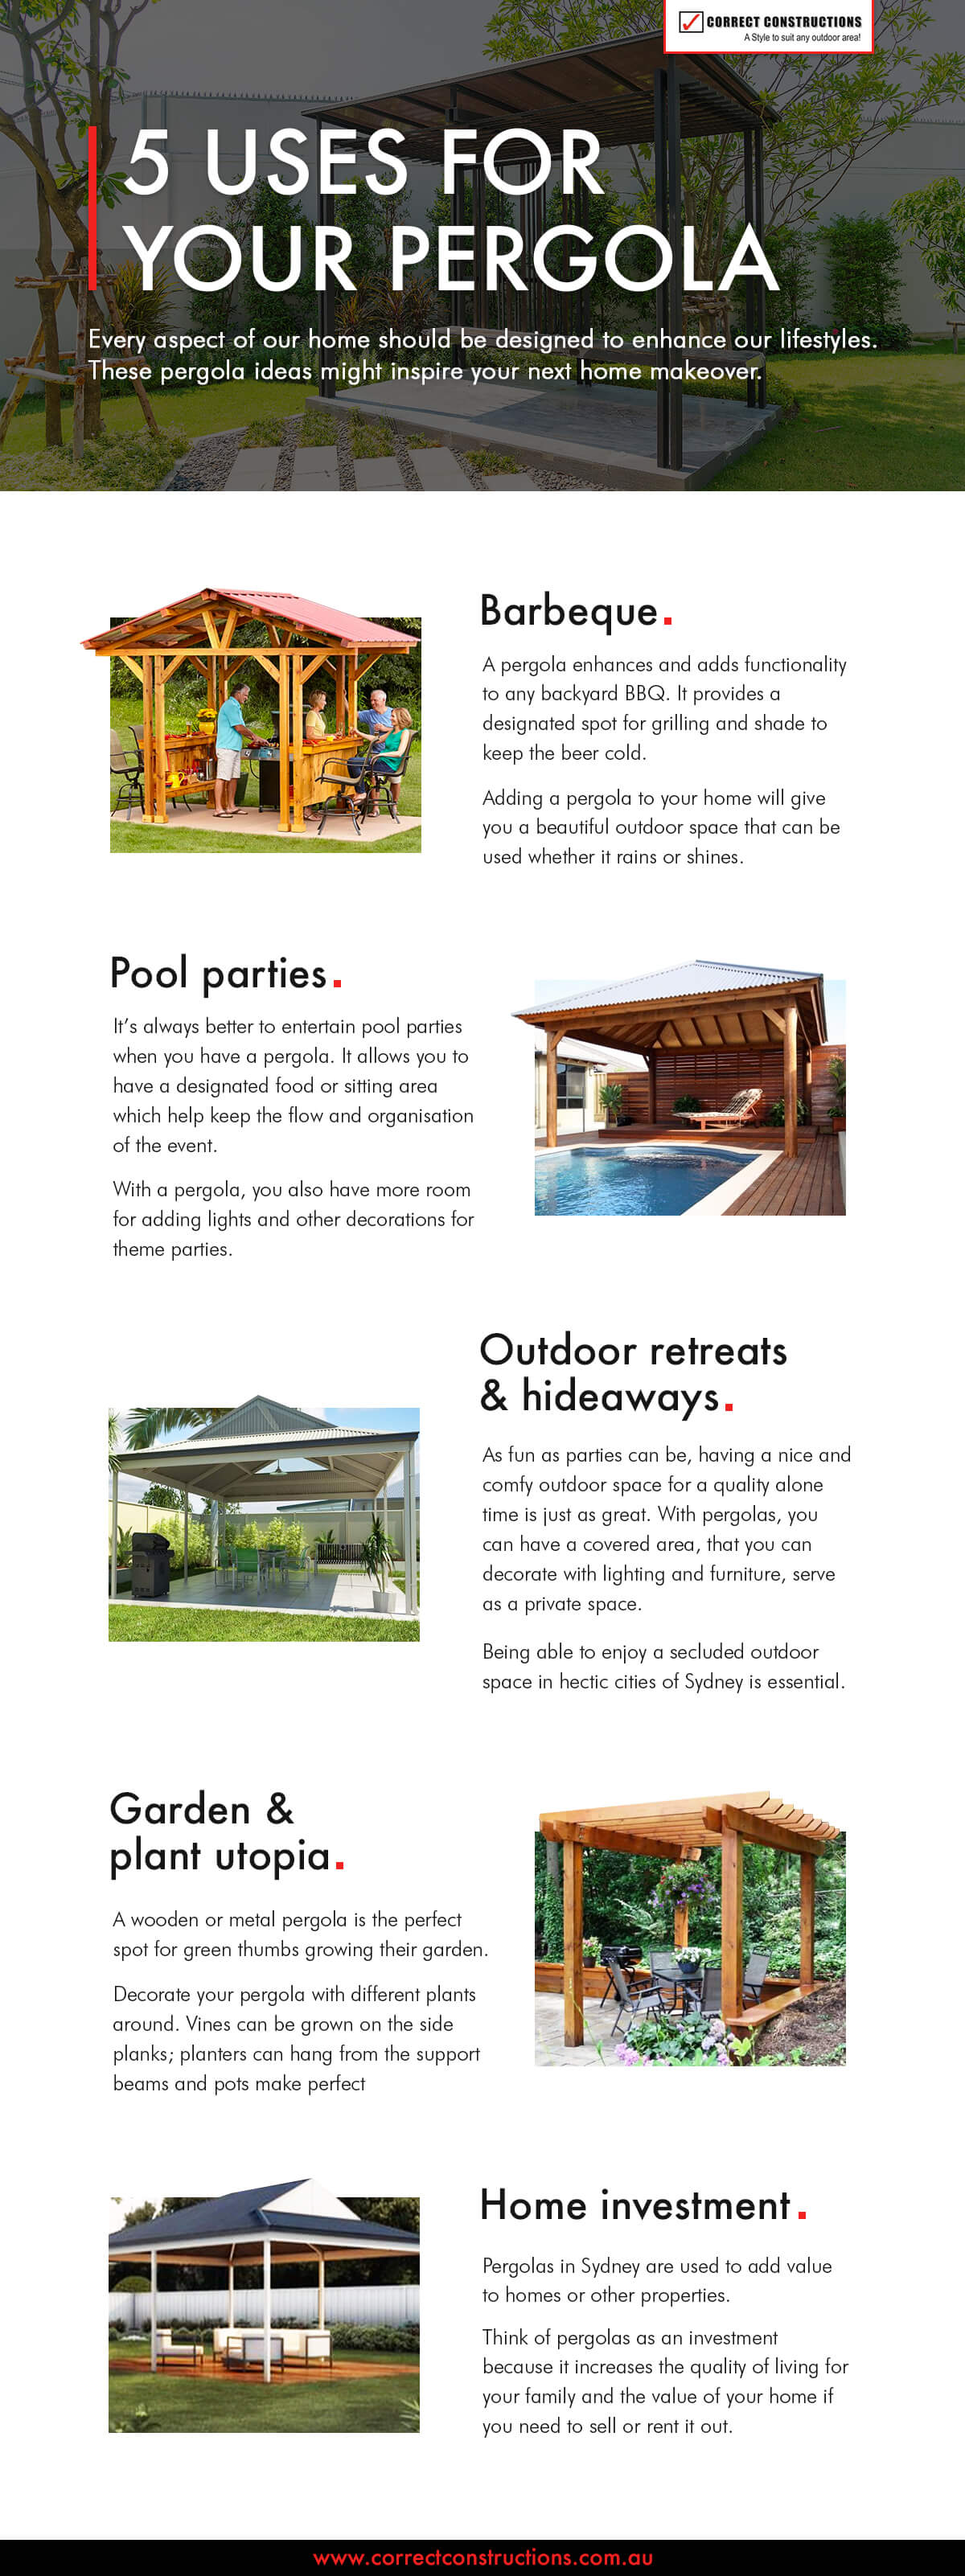 5 uses for your pergola infographic